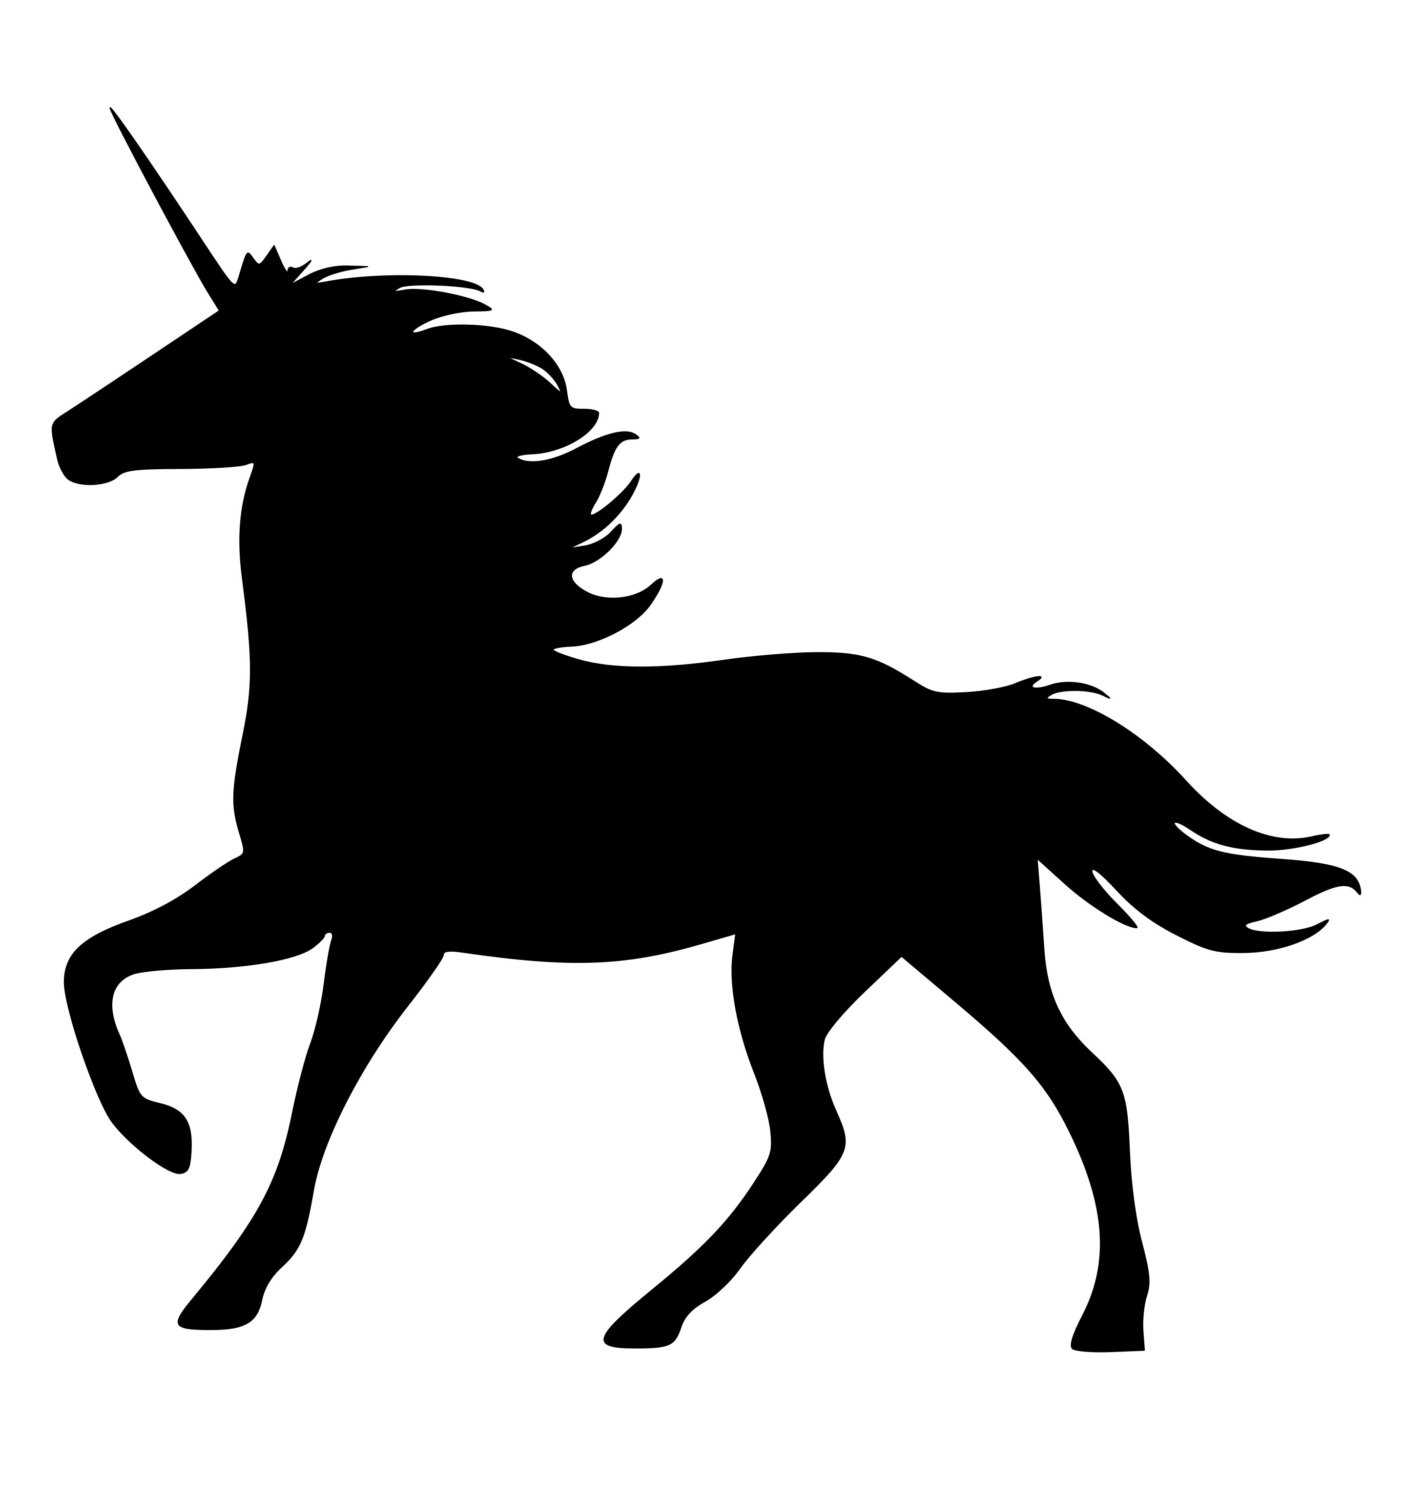 Unicorn Clipart Image: The Silhouette Of A Unicorn.